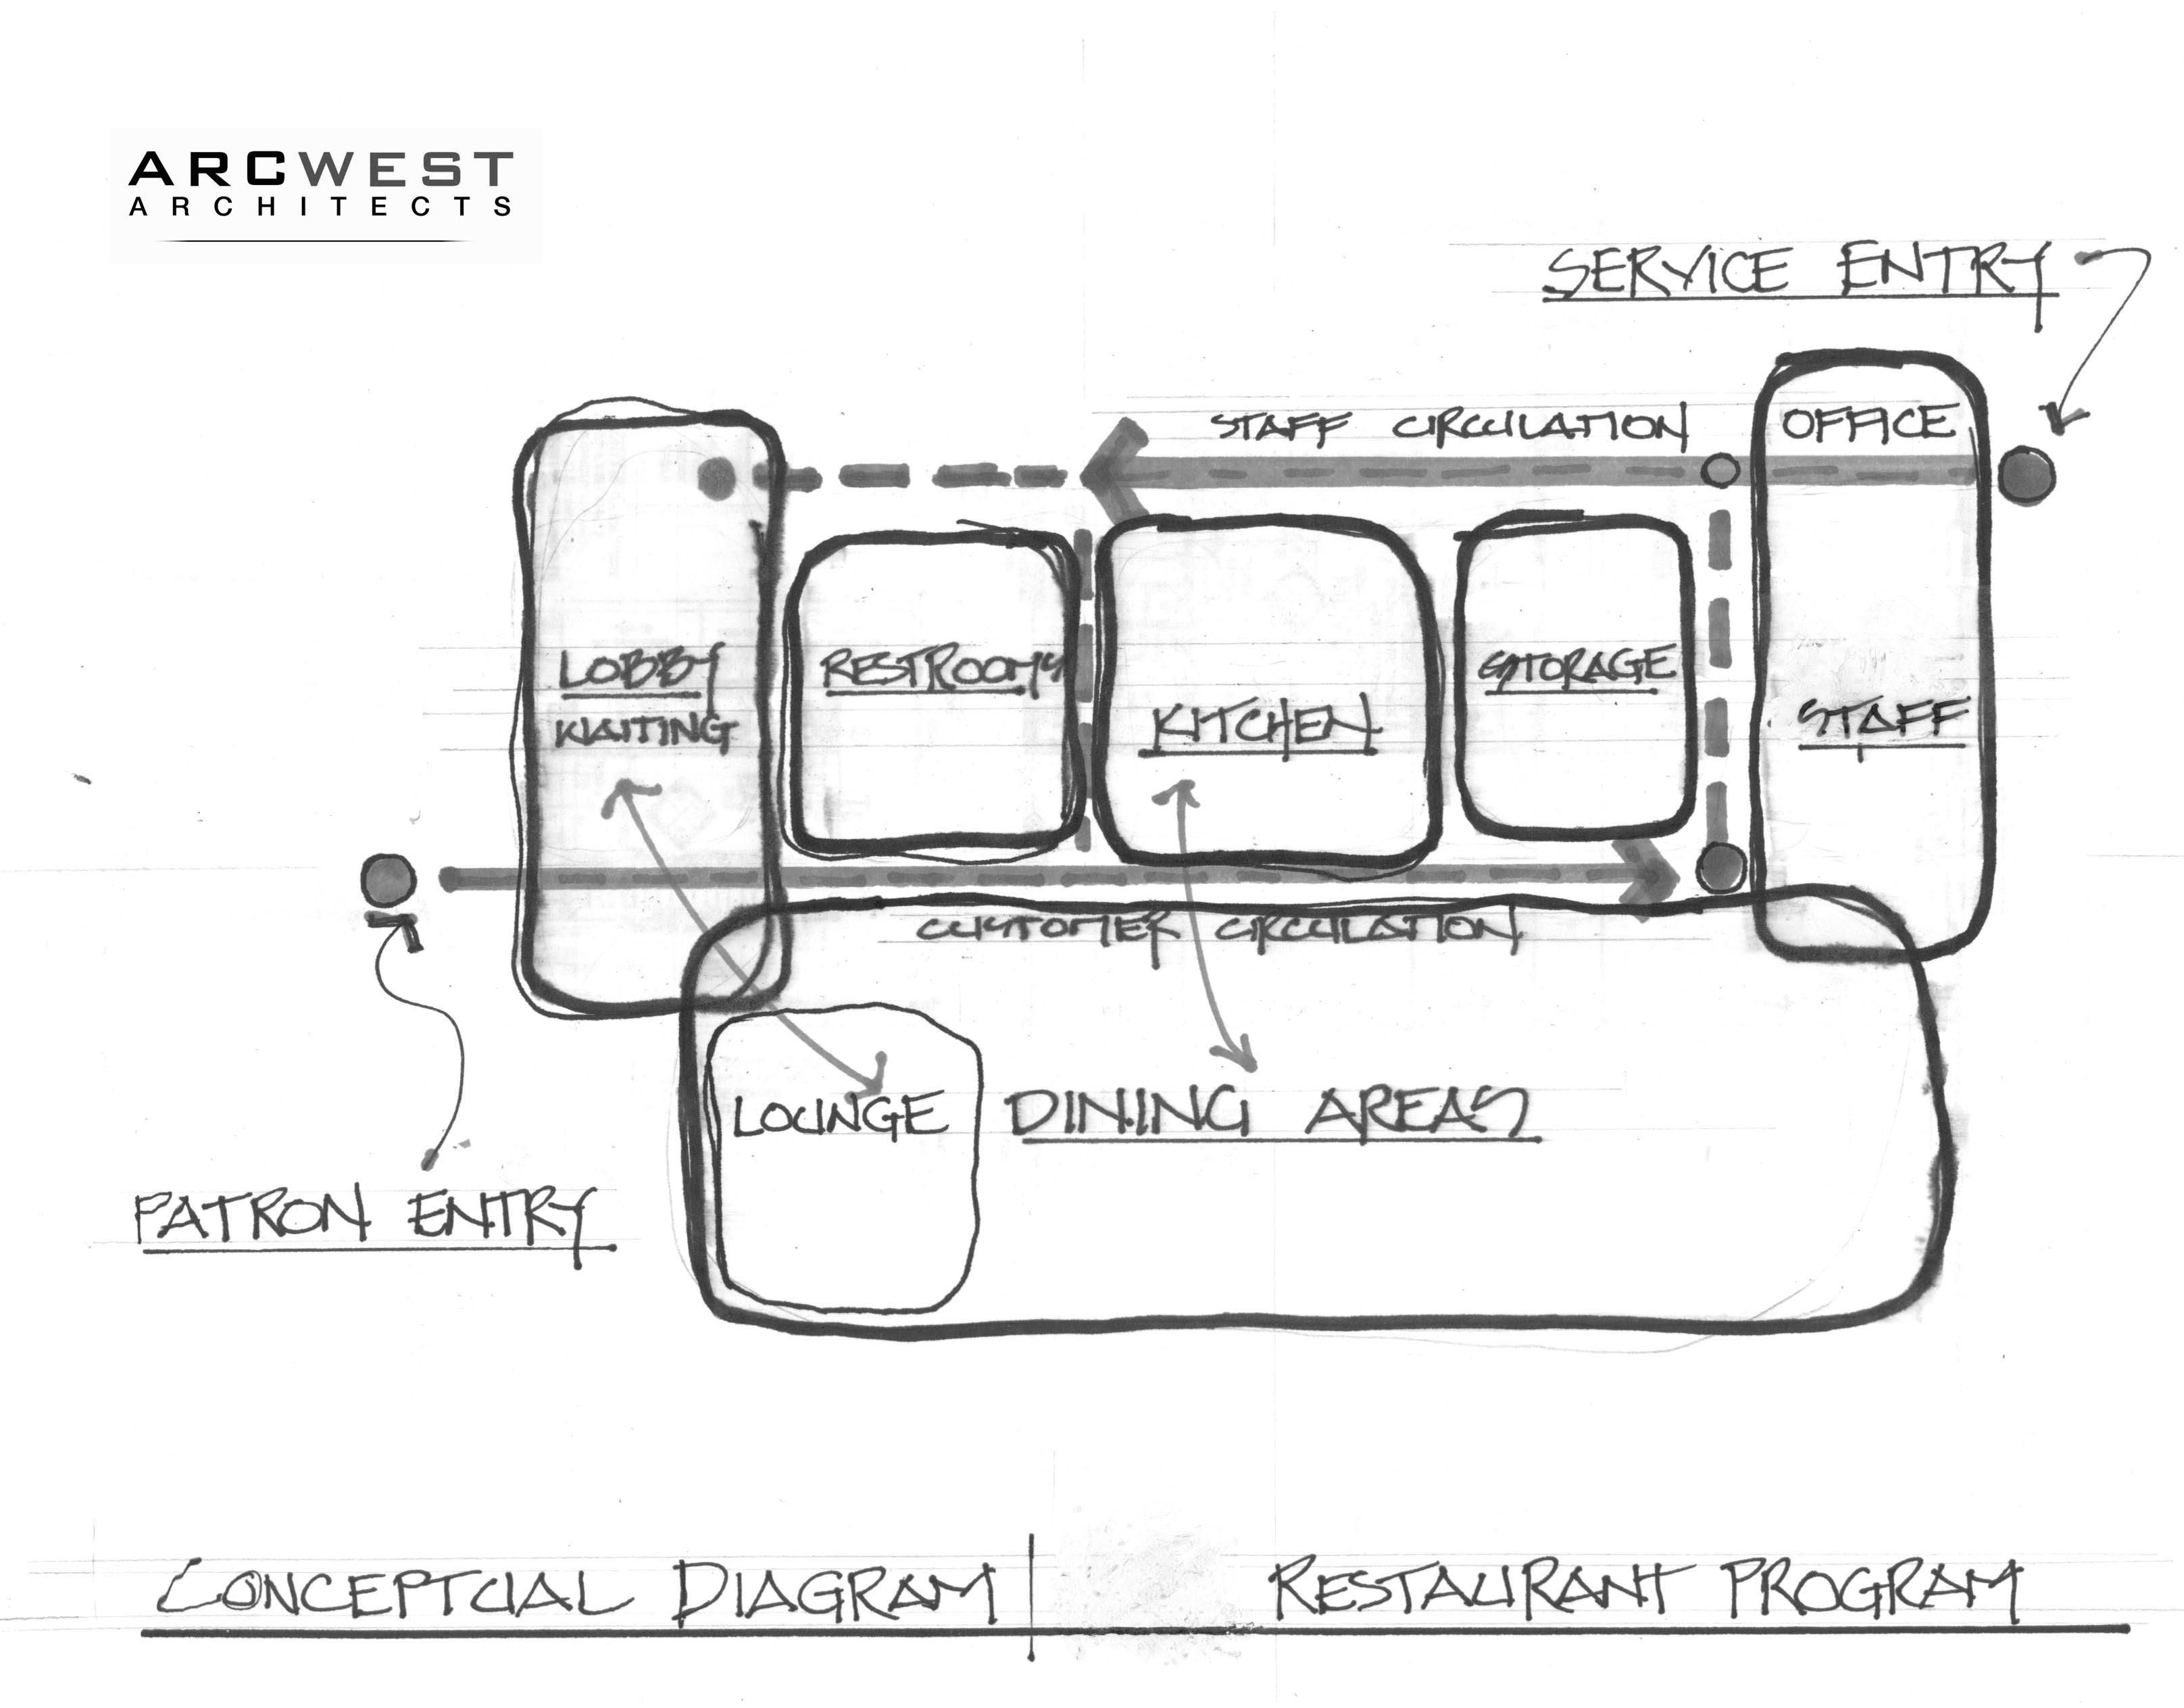 Restaurant Program Diagram R1 Bubble Architecture Tools Parti